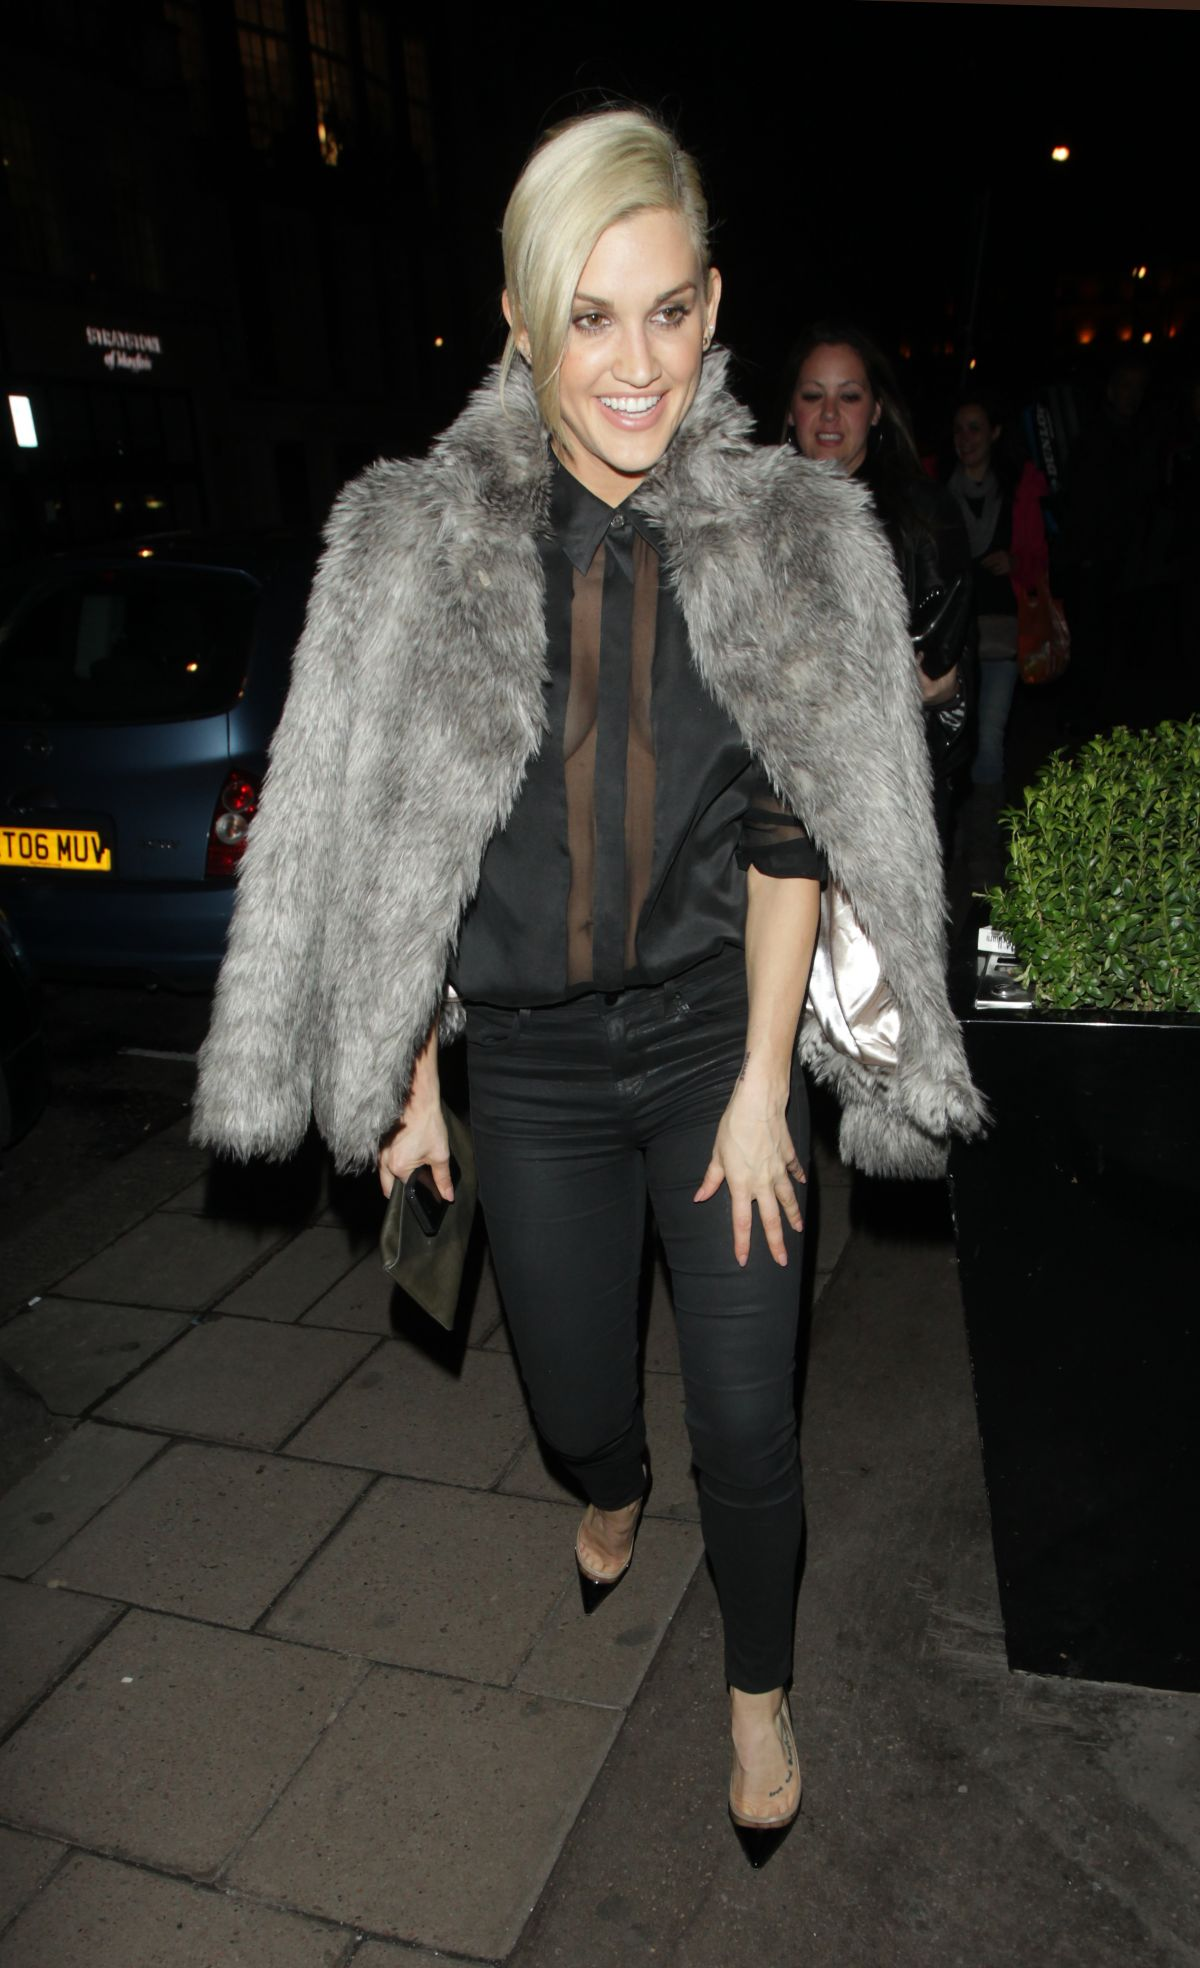 ASHLEY ROBERTS at Arrives Mayfair Hotel in London